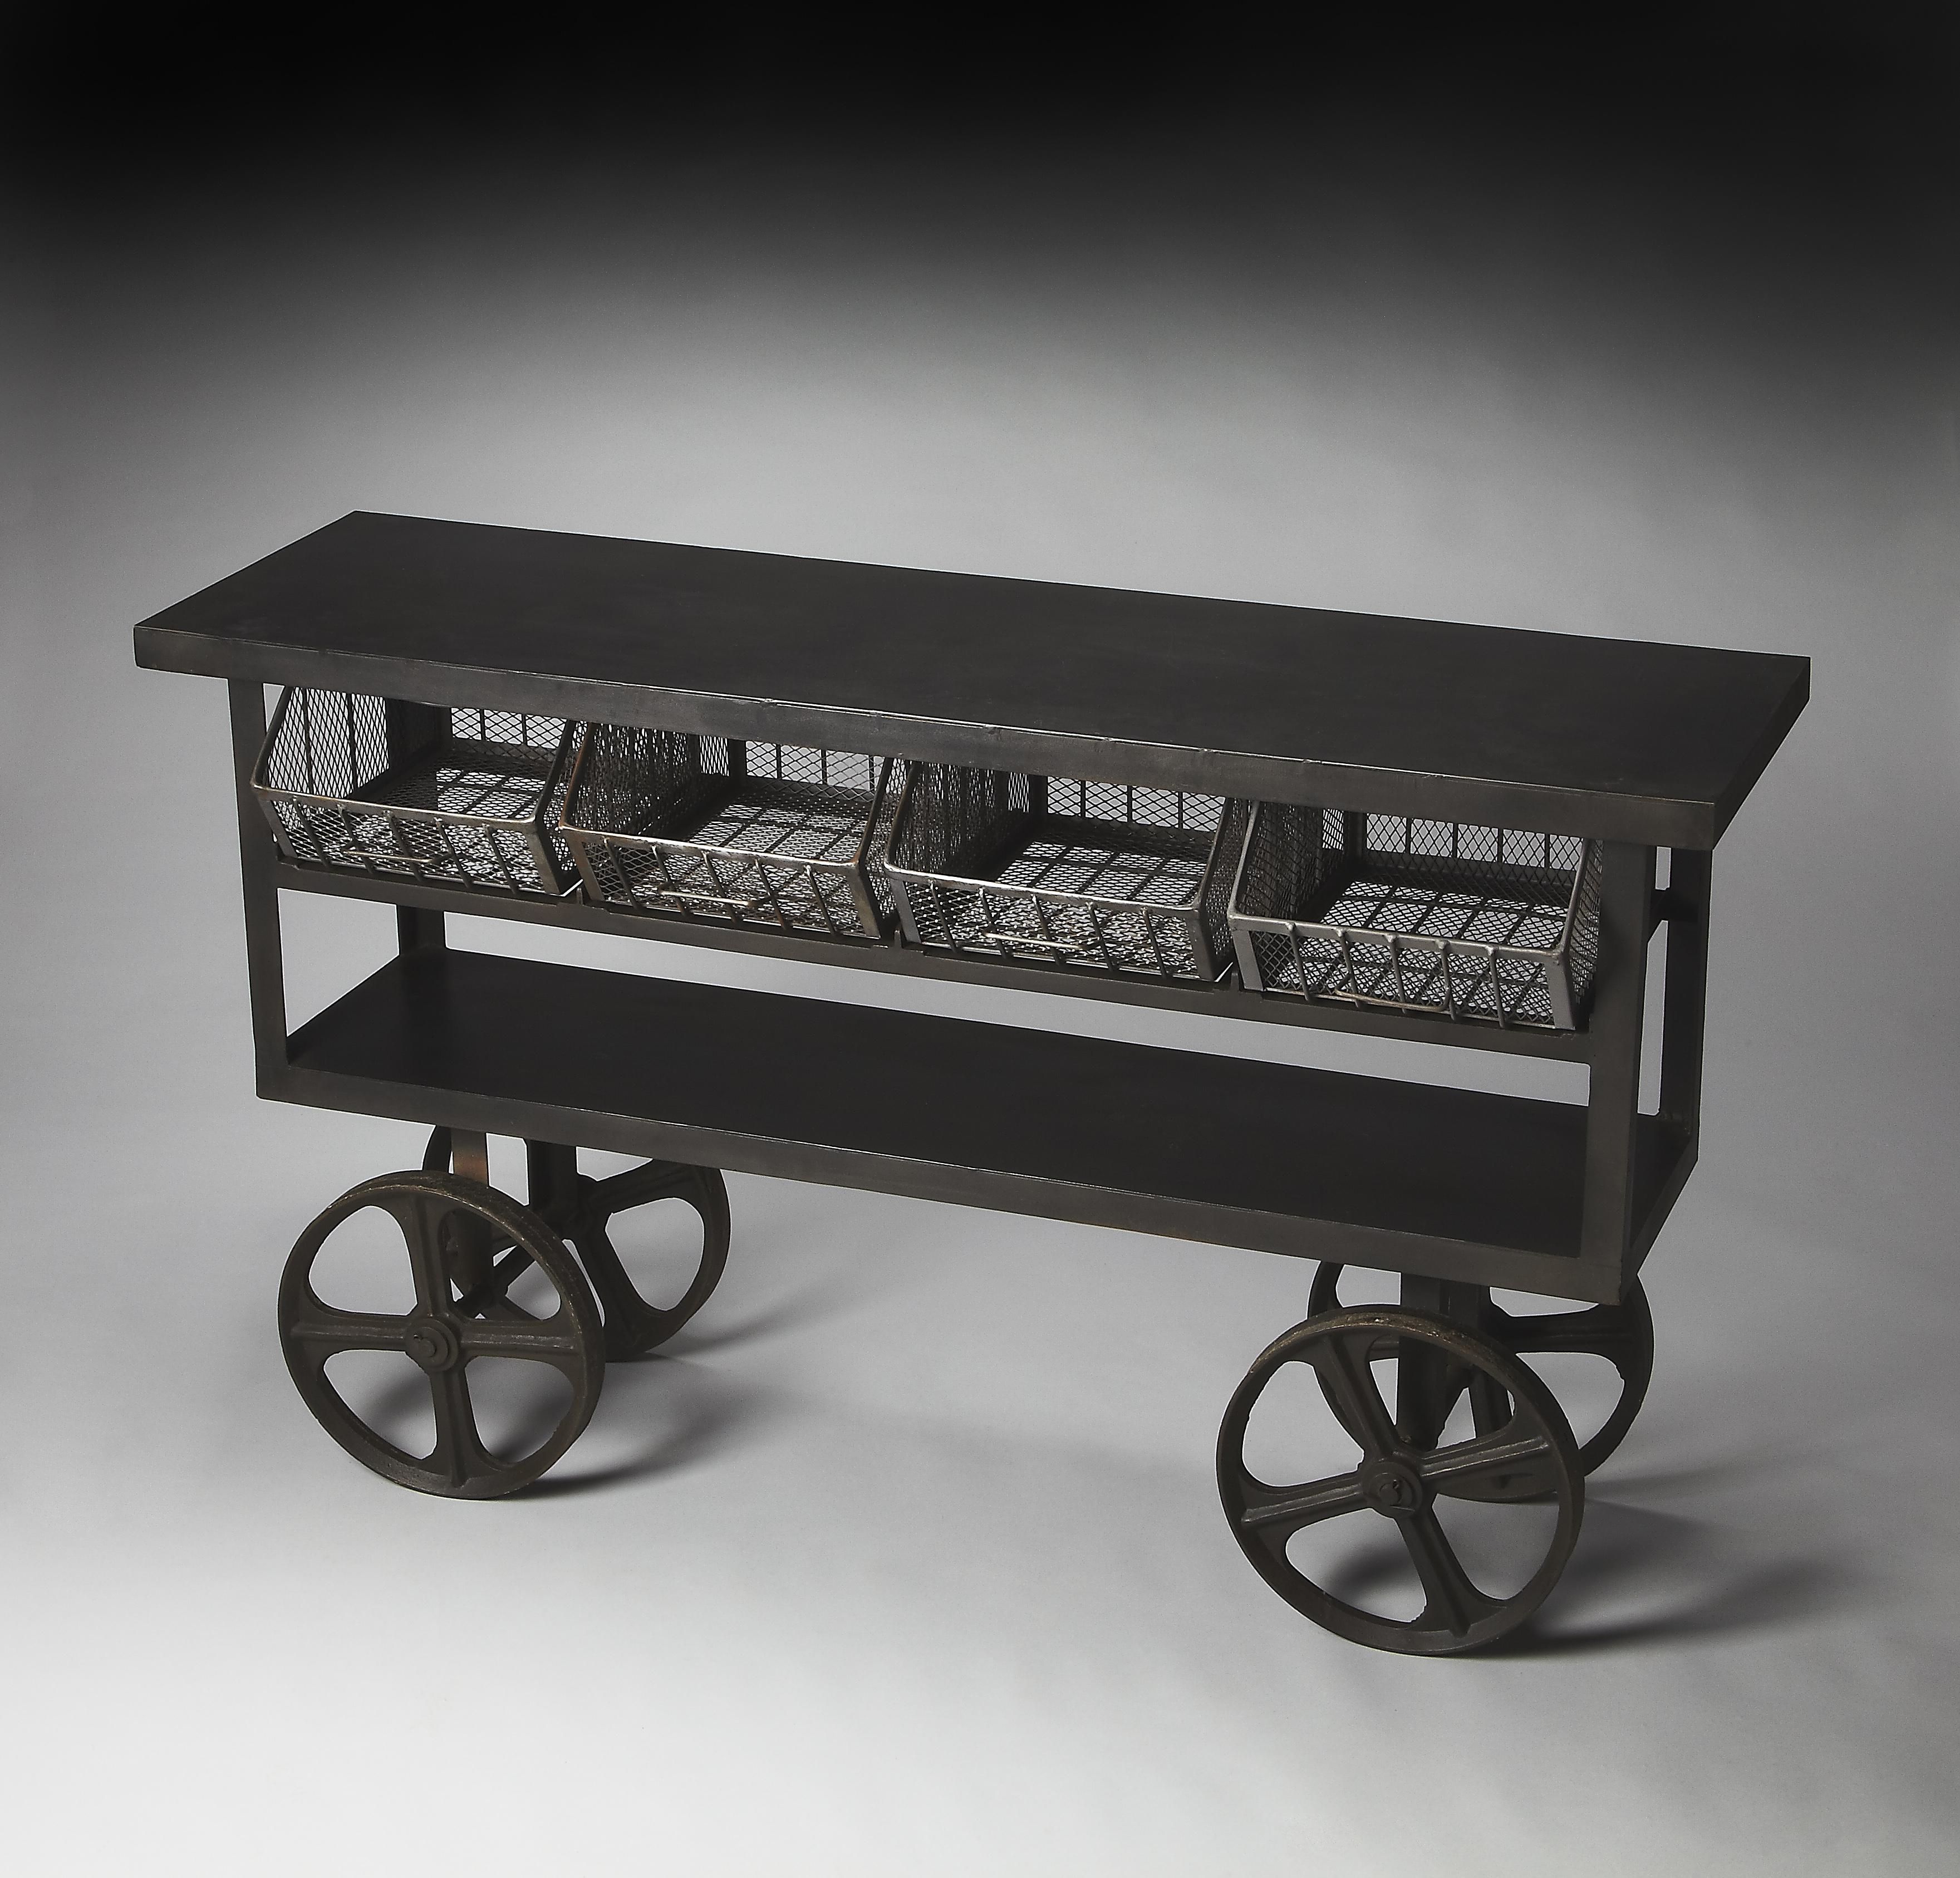 Butler Specialty Company Metalworks Trolley Buffet - Item Number: 3116025